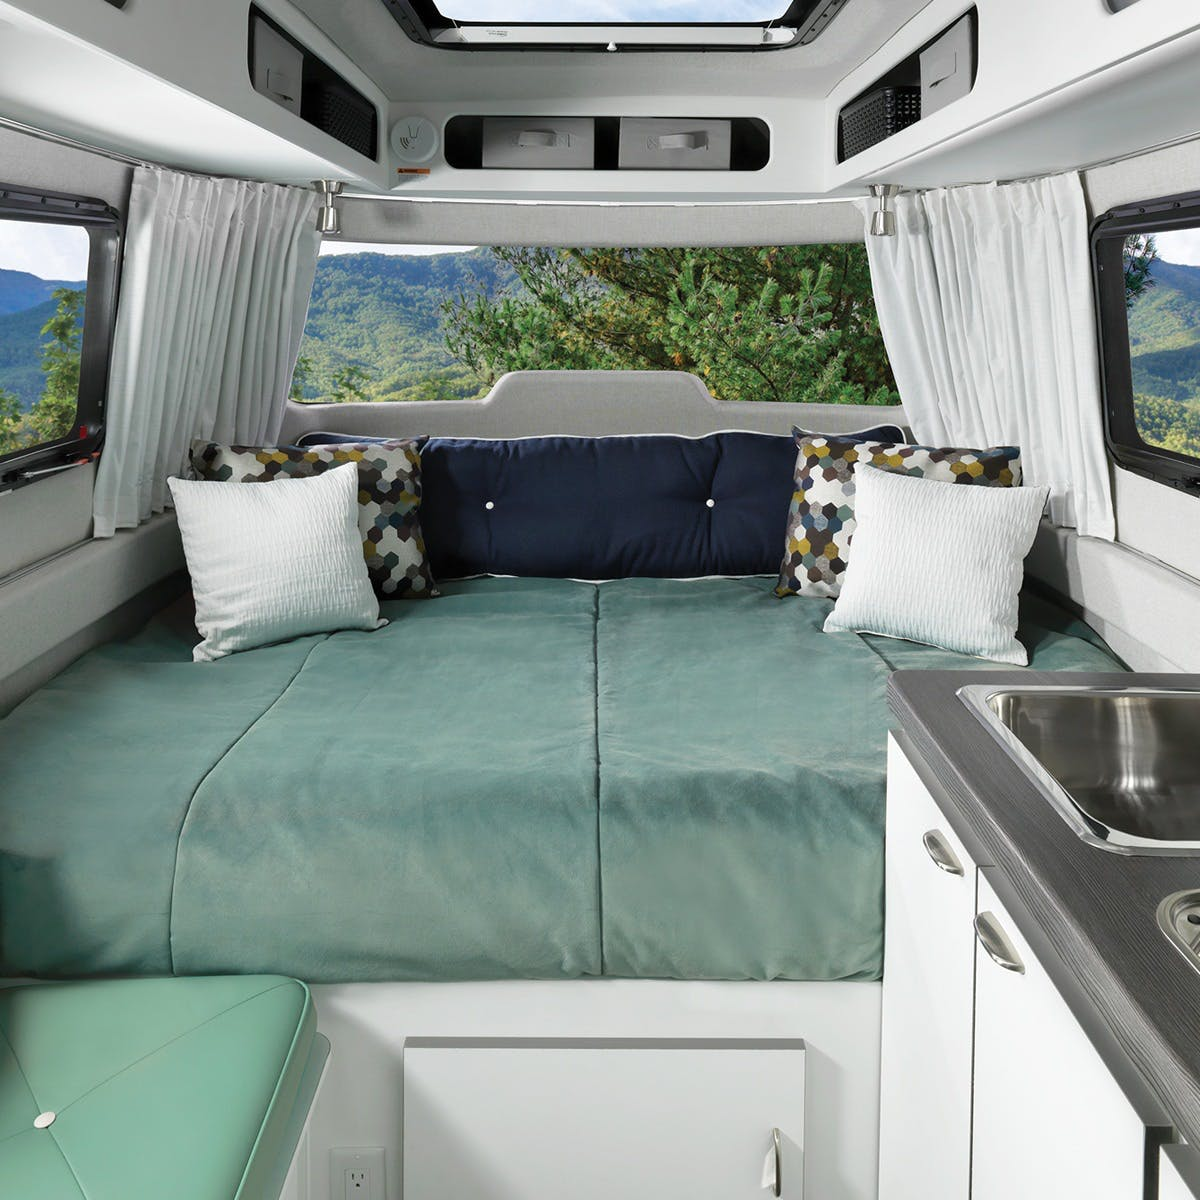 Nest by Airstream clutch blue bed cover decor storage interior